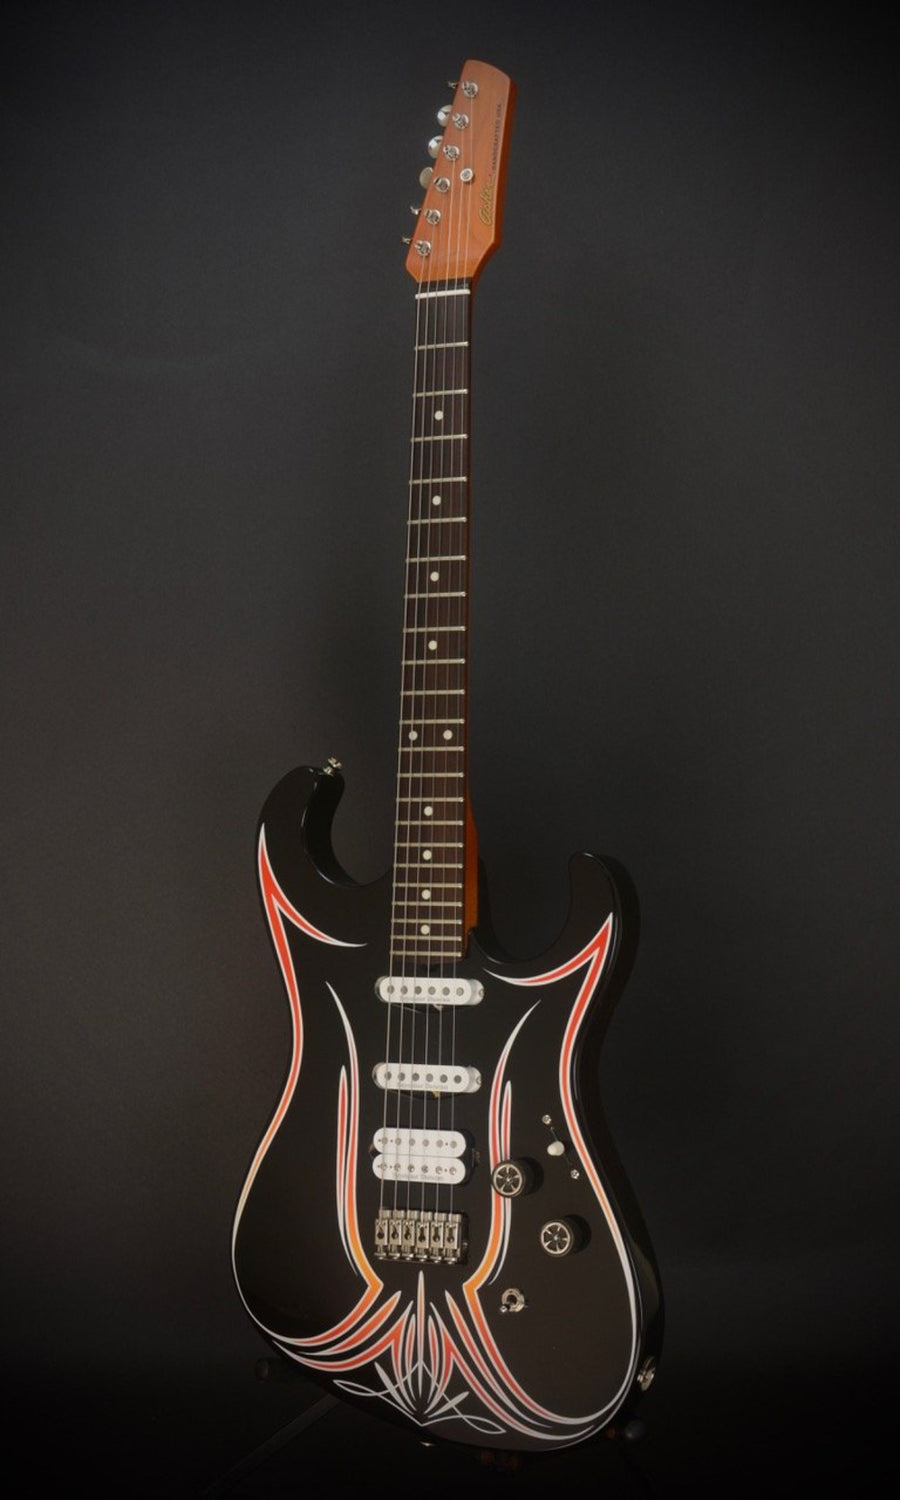 *SALE* 2018 Asher SSH Hot Rod Custom Guitar with Duncans and Pinstriping!